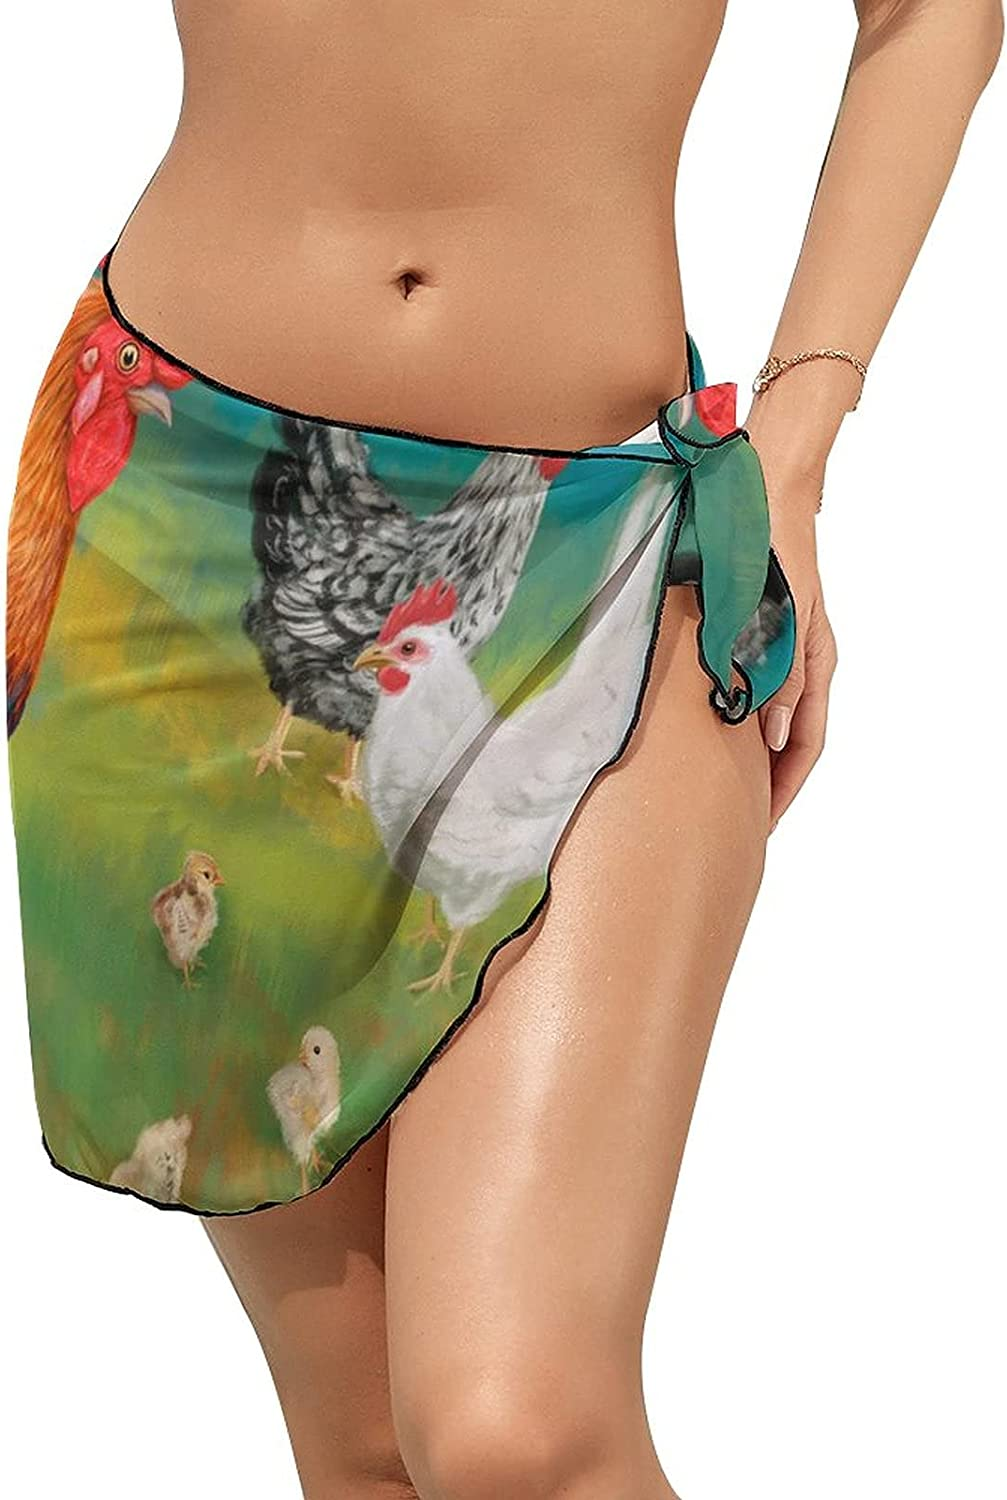 JINJUELS Women Beach Wrap Sarong Cover Up Colored Rooster with Chickens Sexy Short Sheer Bikini Wraps